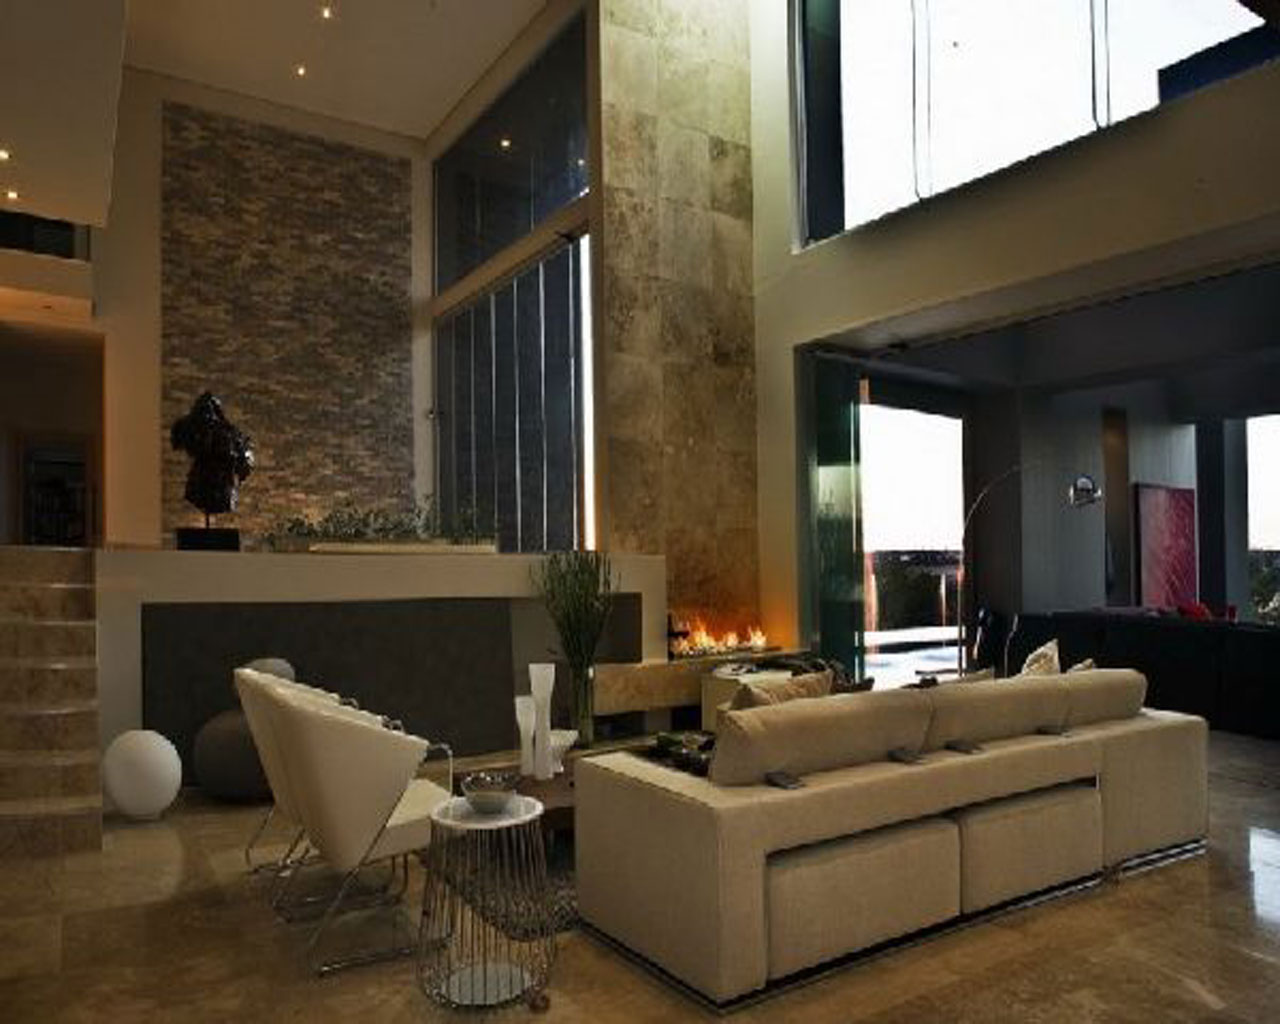 Contemporary House Interior Design Furniture And Furnishings All About Home Furniture